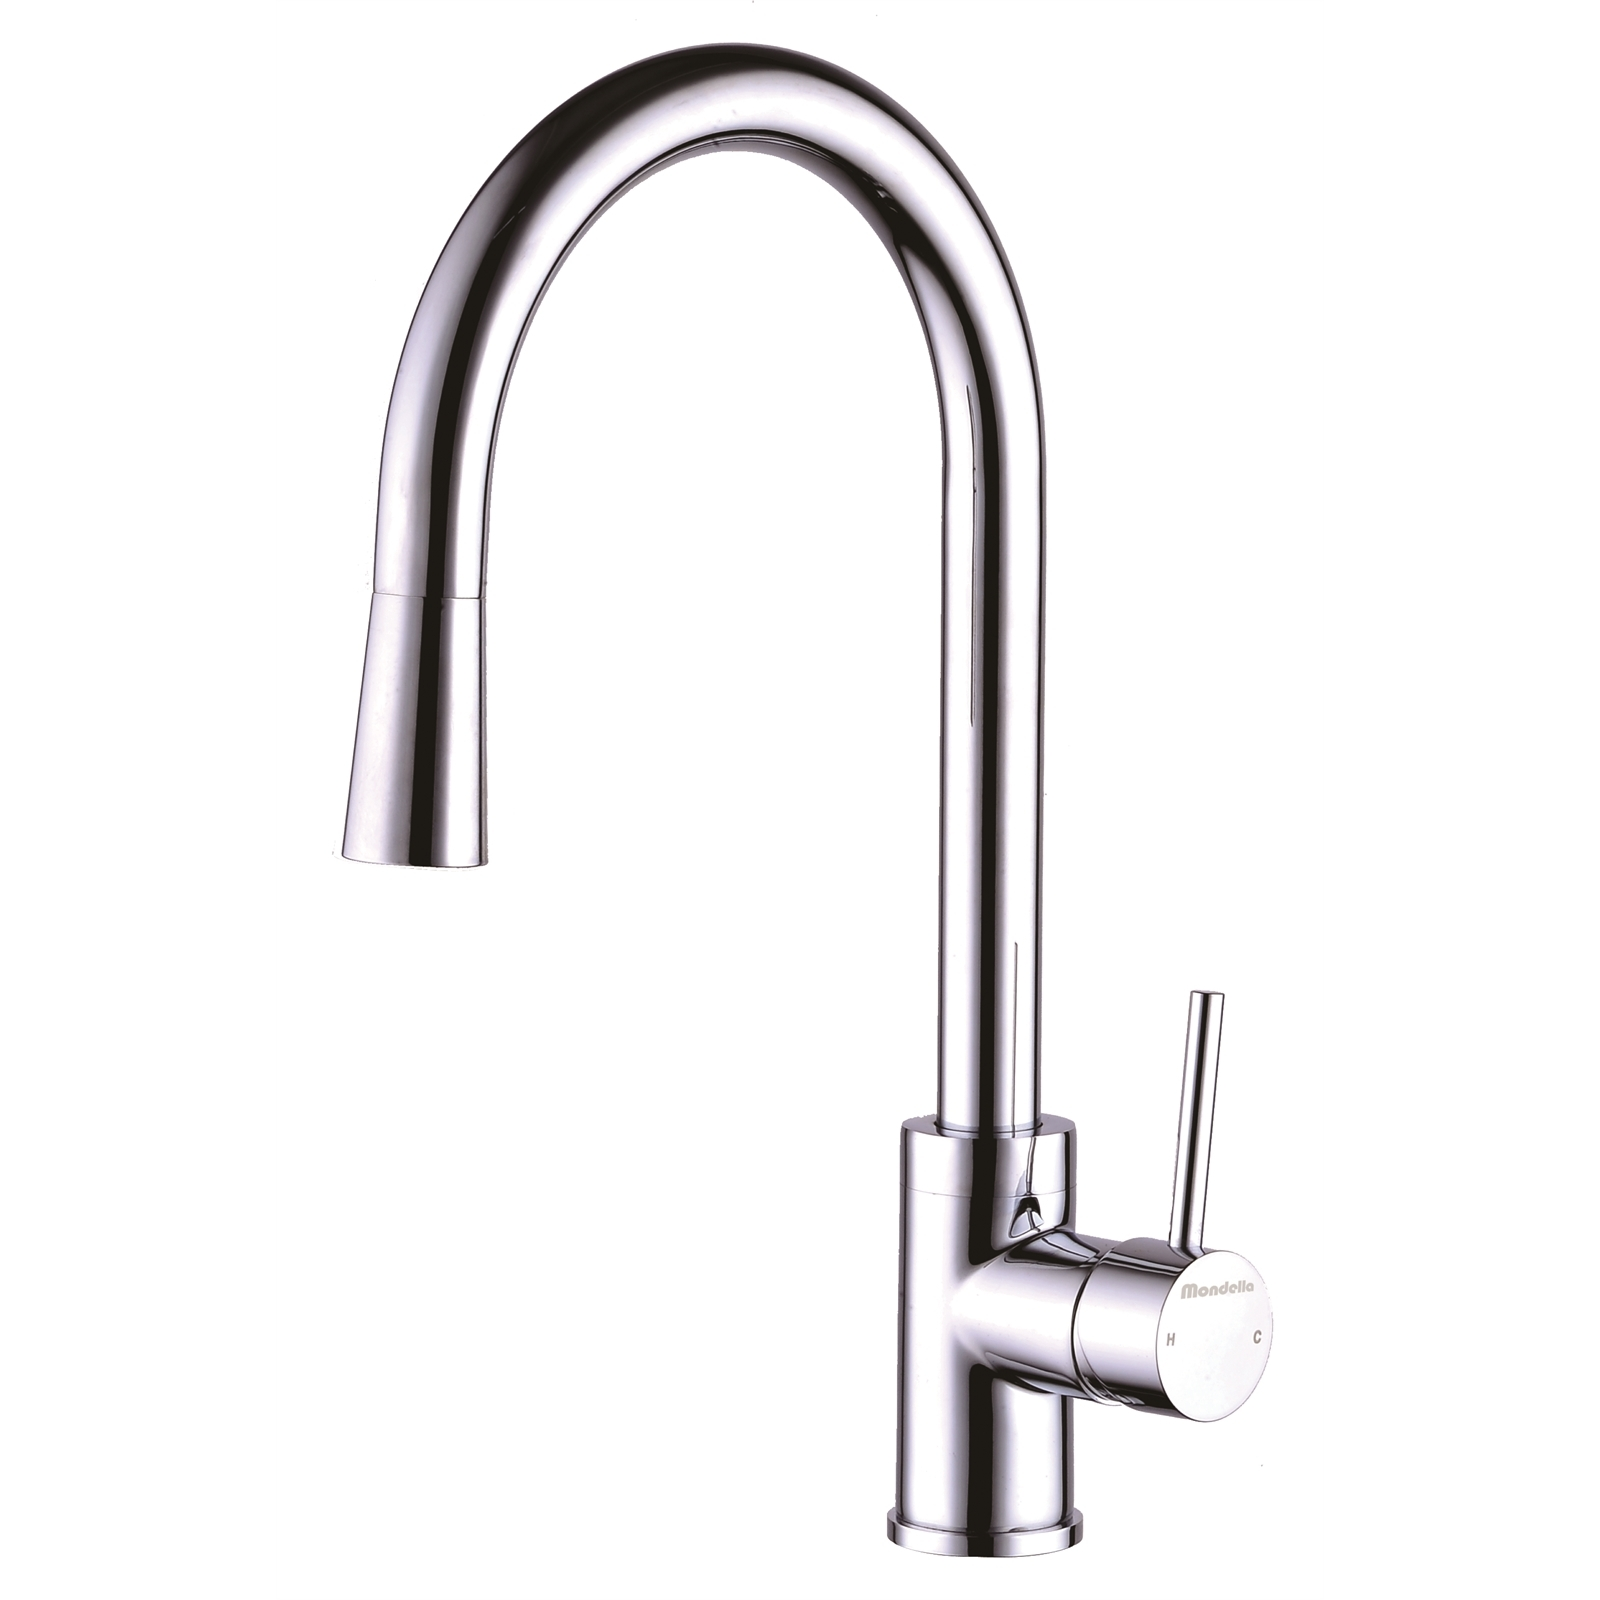 Mondella Chrome Resonance Pin Lever Vege Spray Sink Mixer - Suitable For Mains Pressure Only